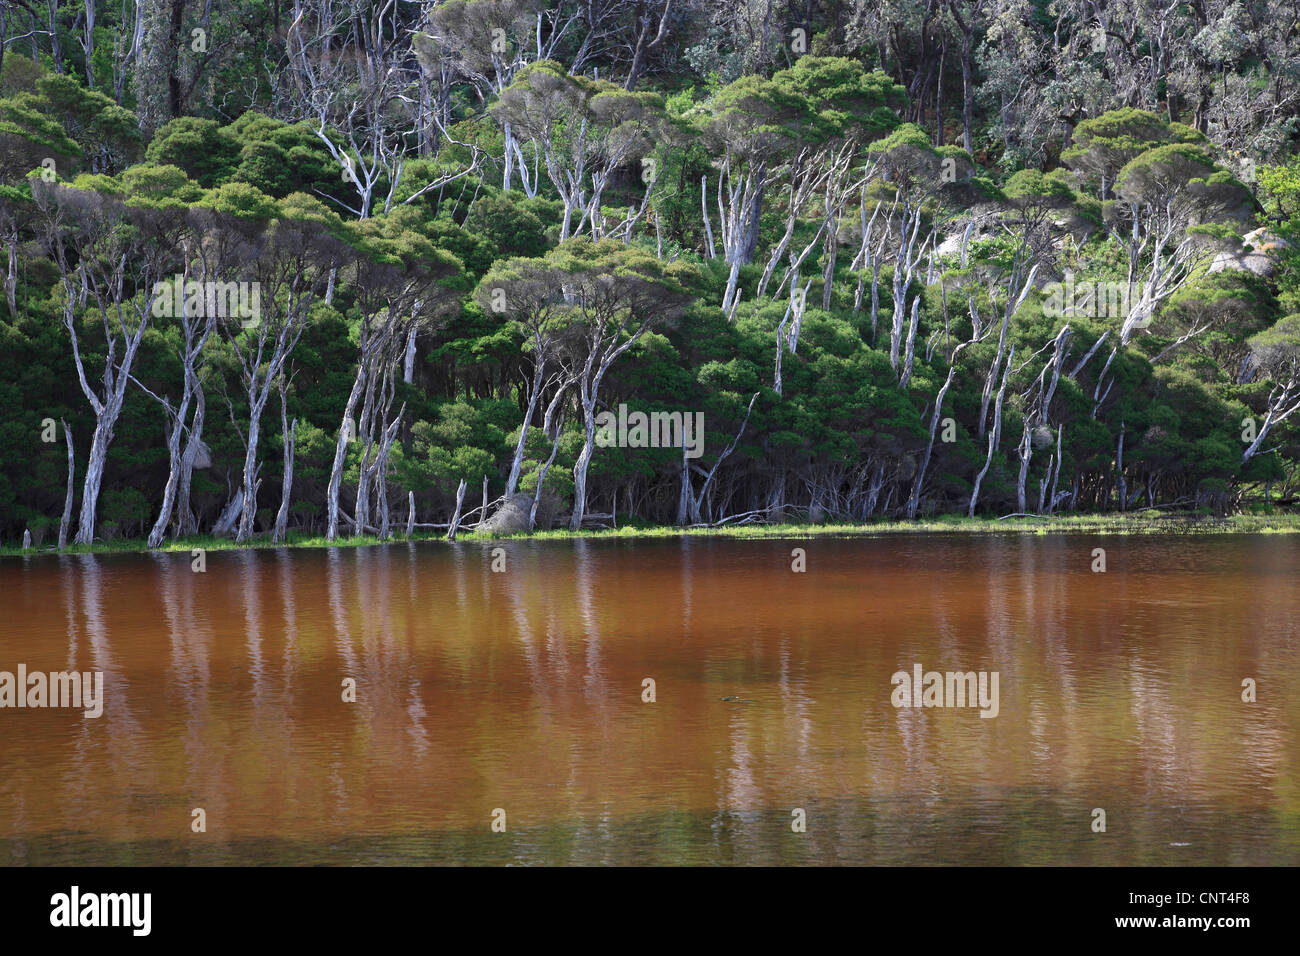 Tidal River in the Wilsons Promontory National Park, Australia, Victoria, Wilsons Promontory National Park - Stock Image